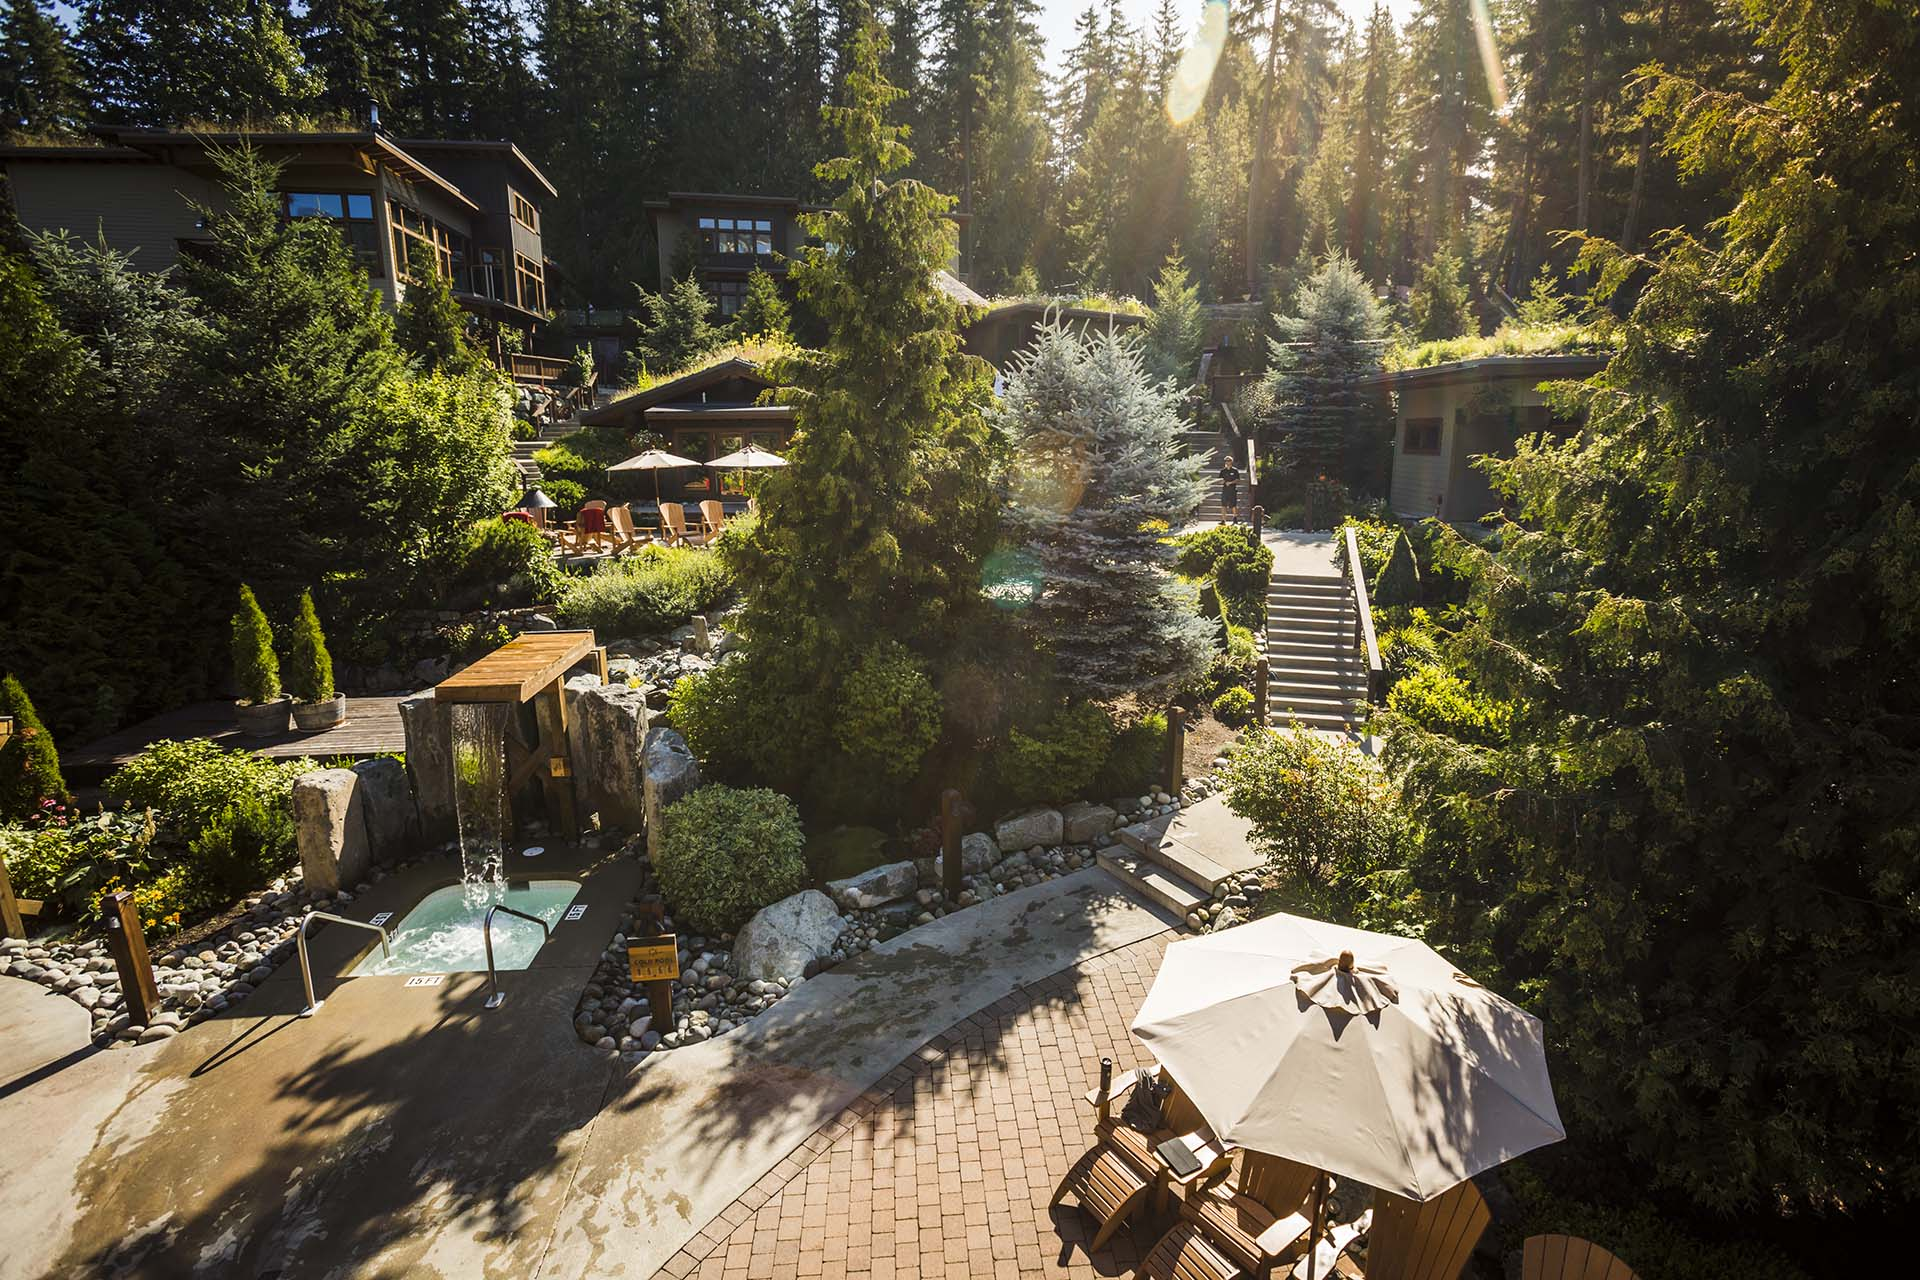 Overview of the Scandinave Spa Whistler, British Columbia